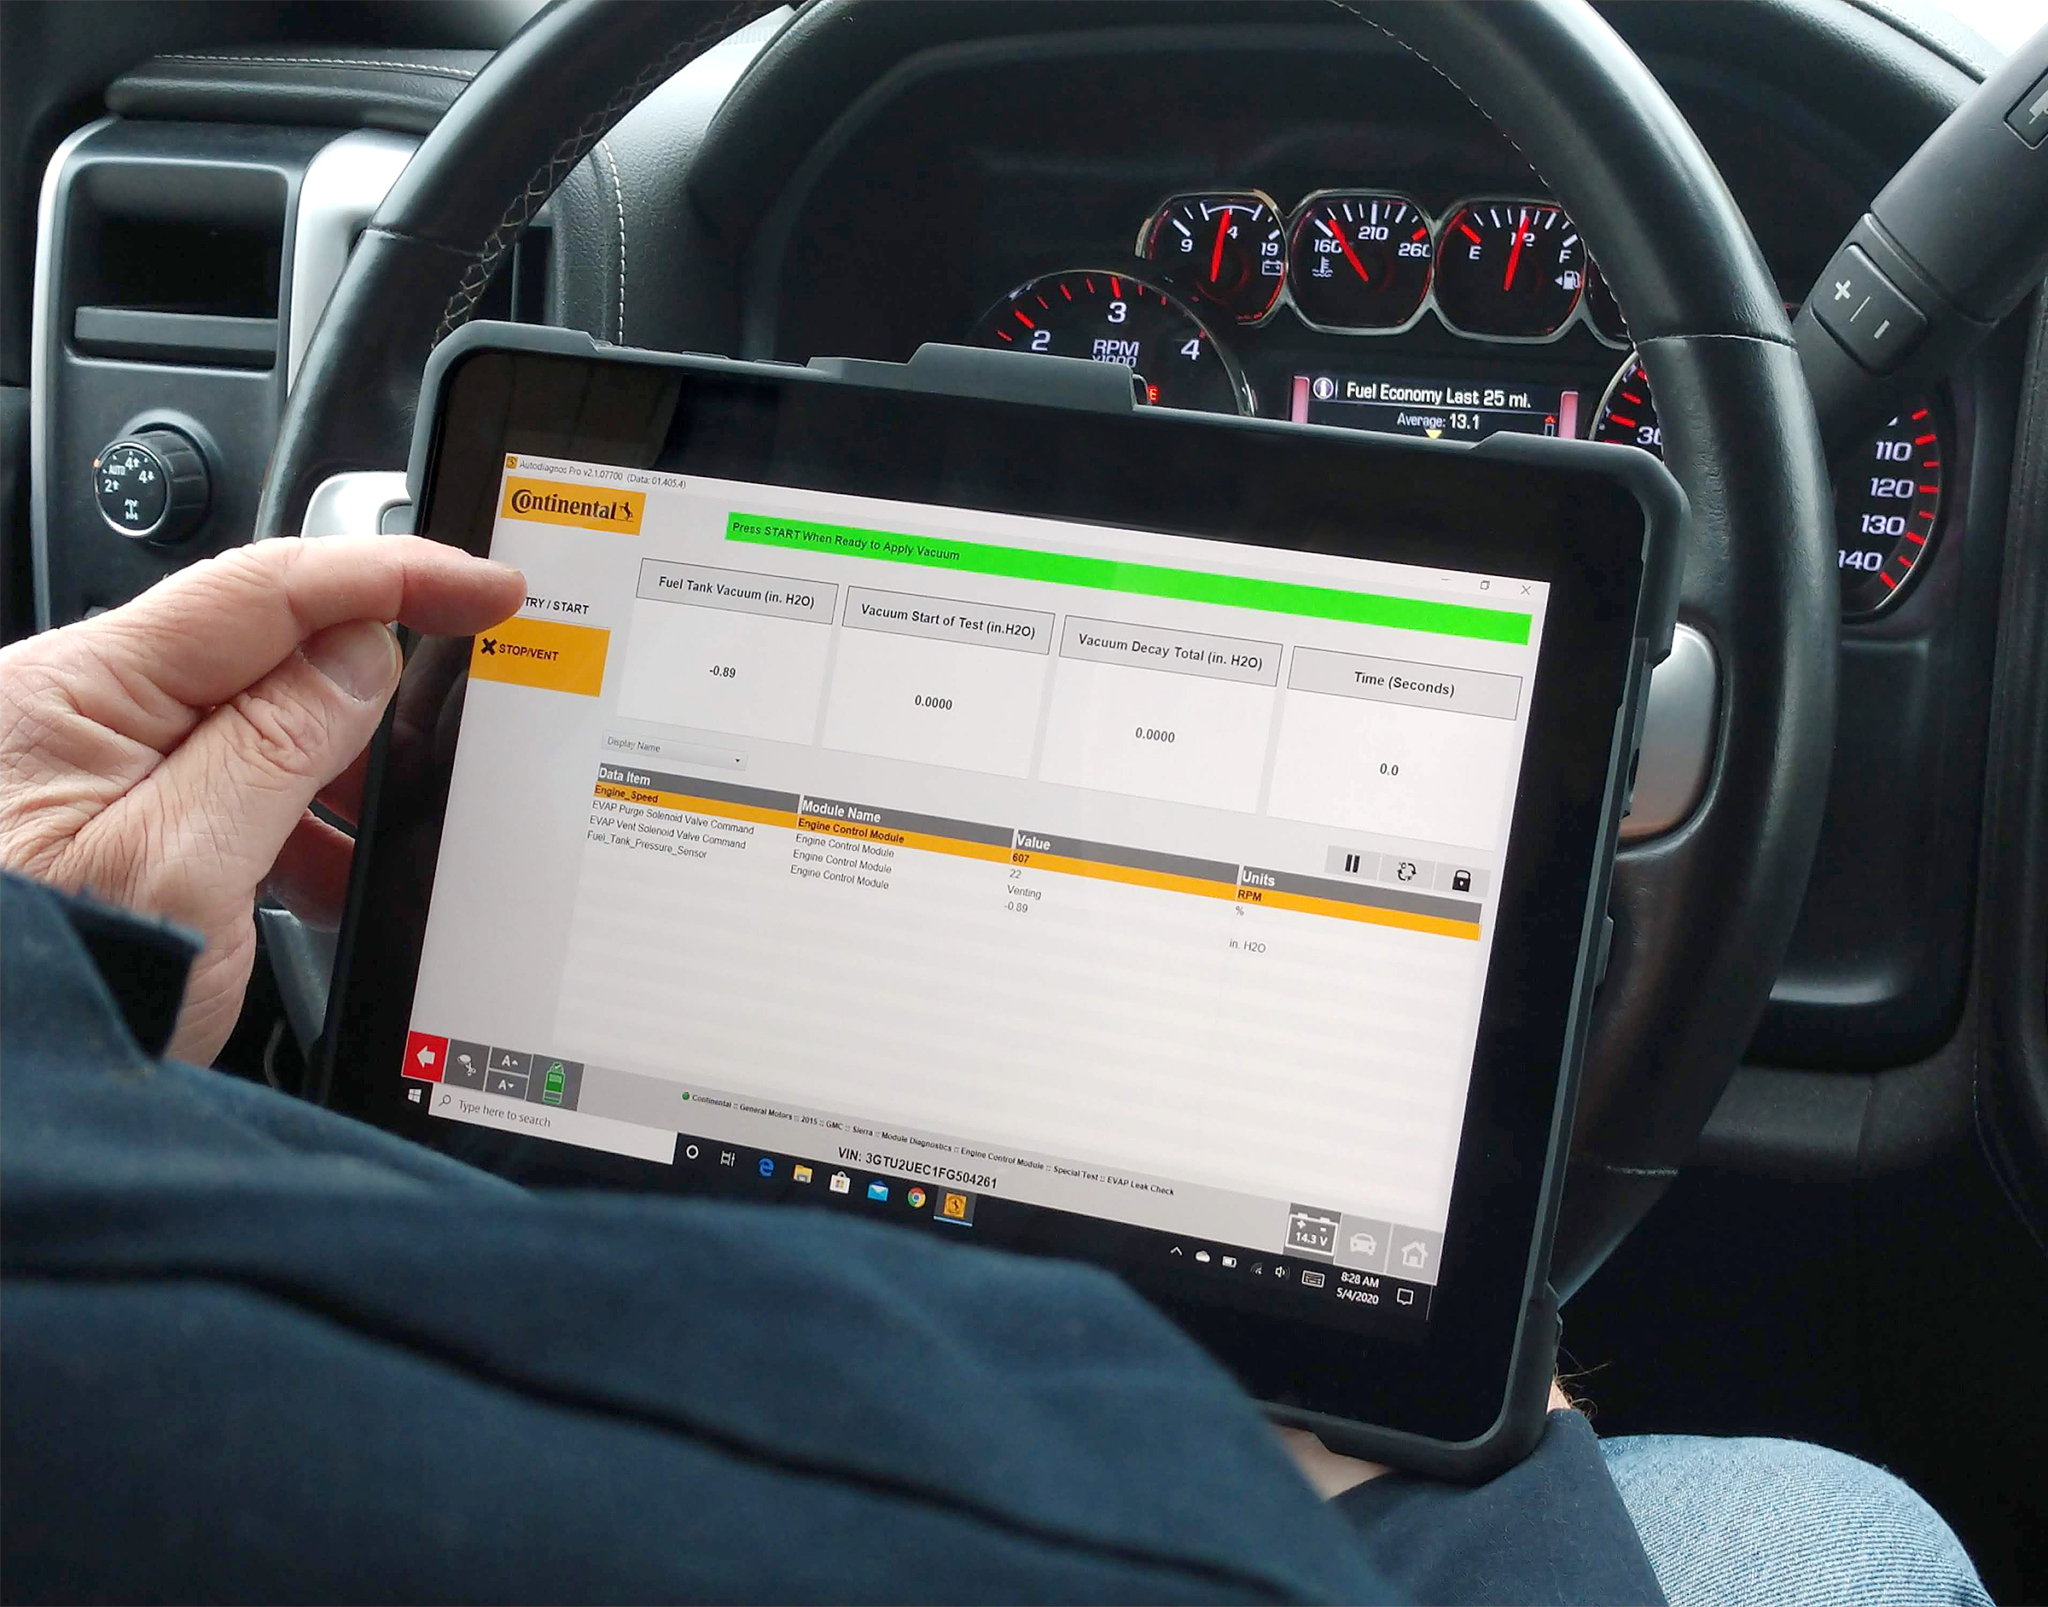 Continental launches Autodiagnos Pro Automotive vehicle diagnostic system